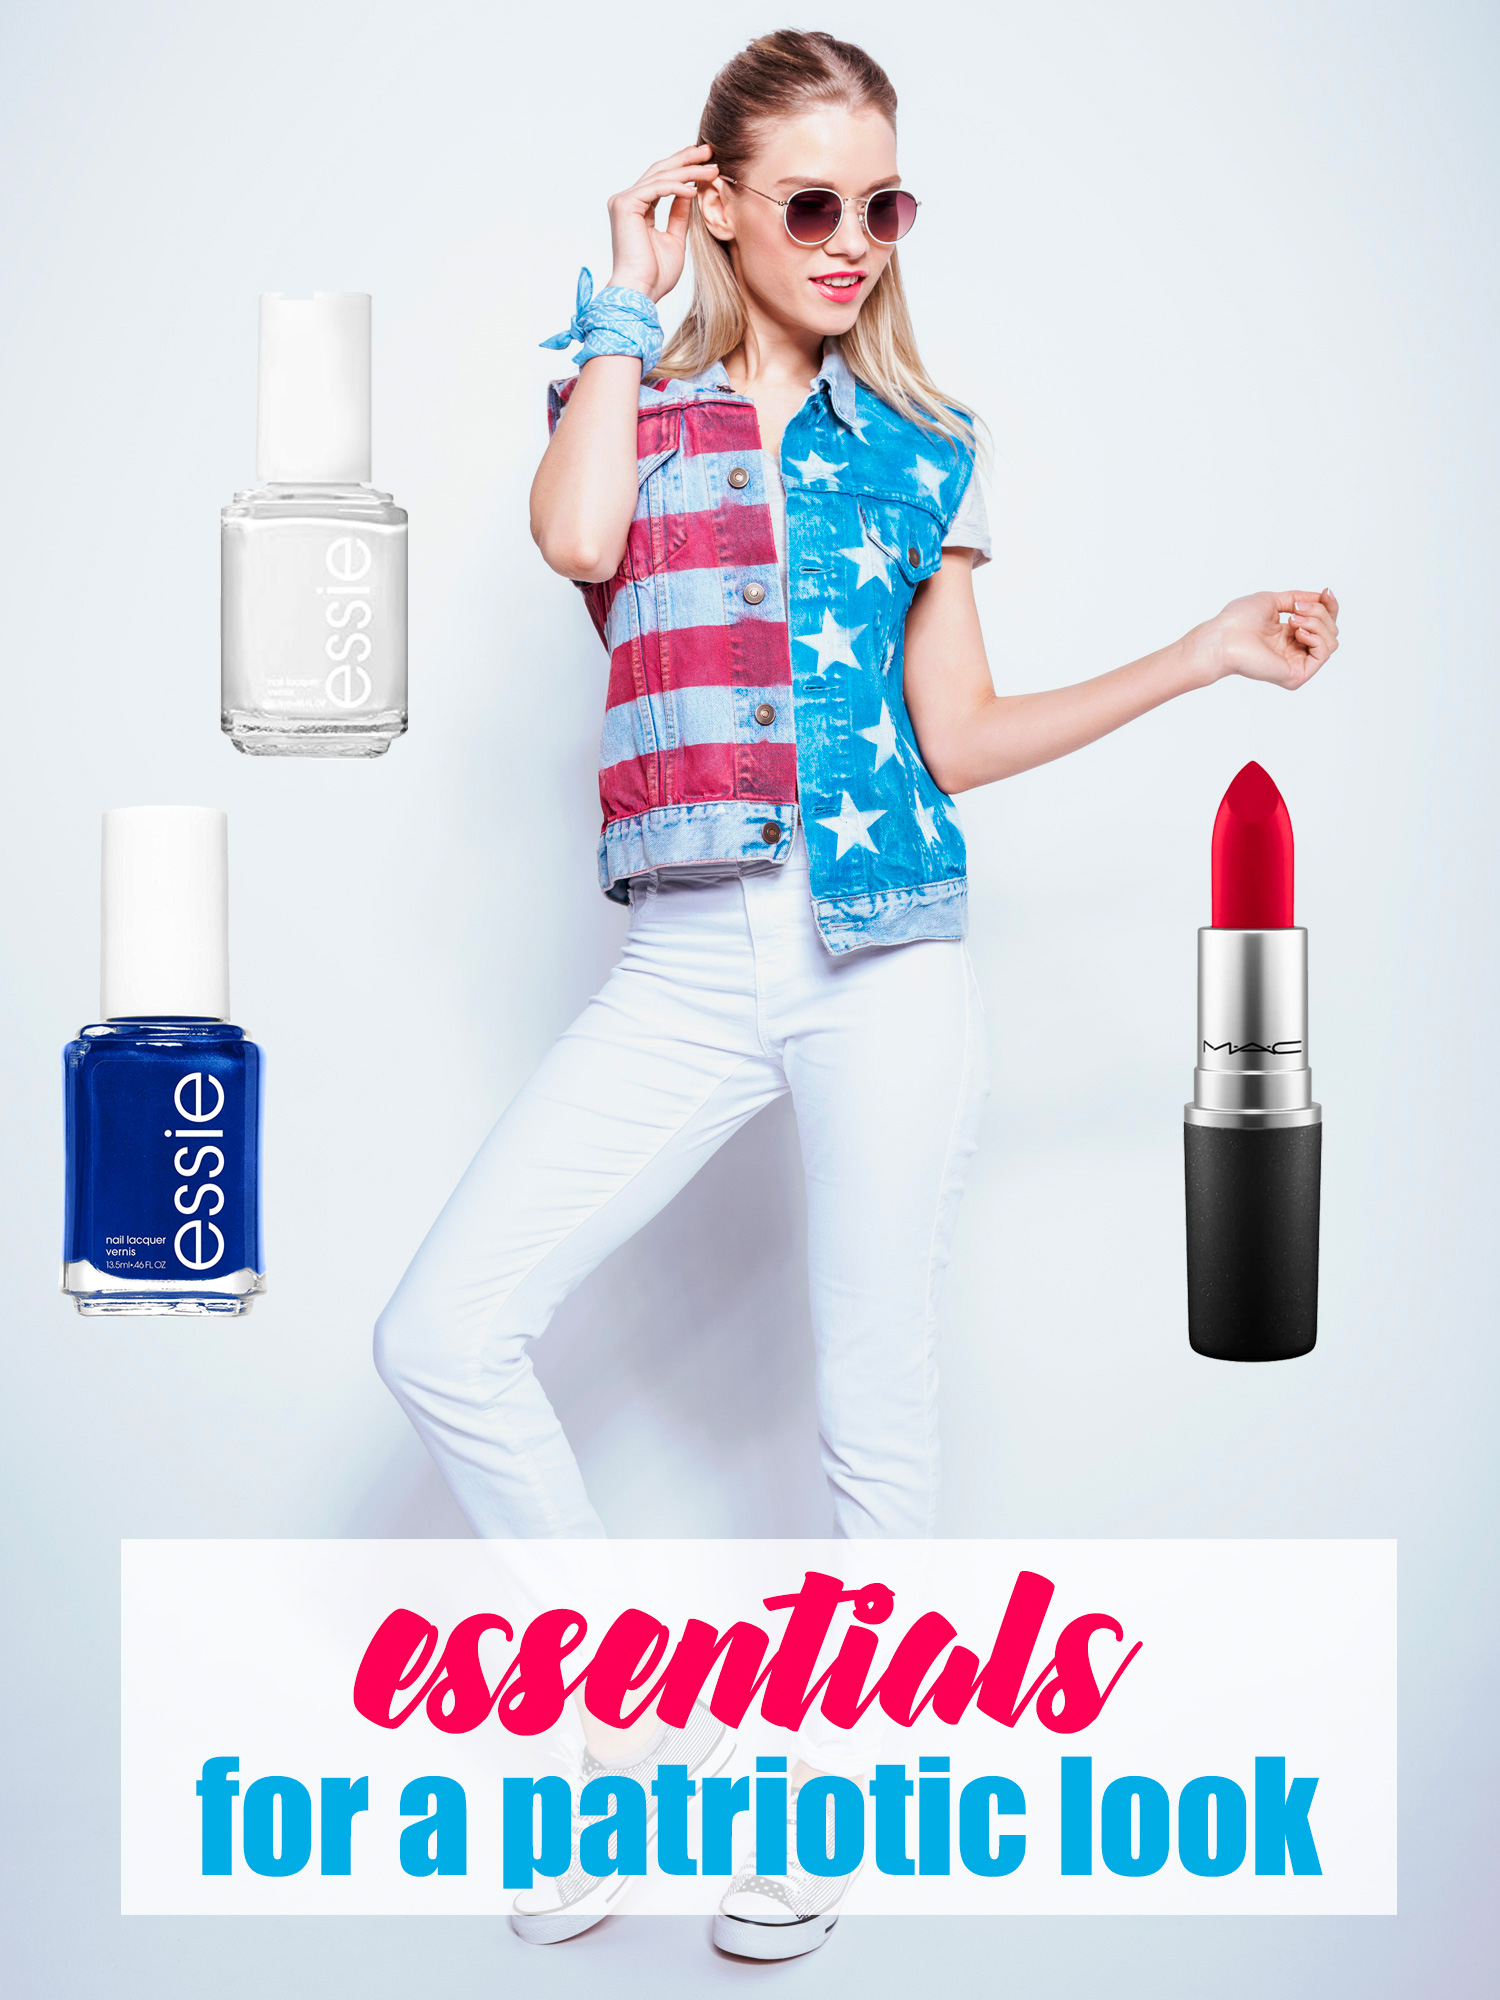 Everything You Need to Put the Ultimate Patriotic Look Together